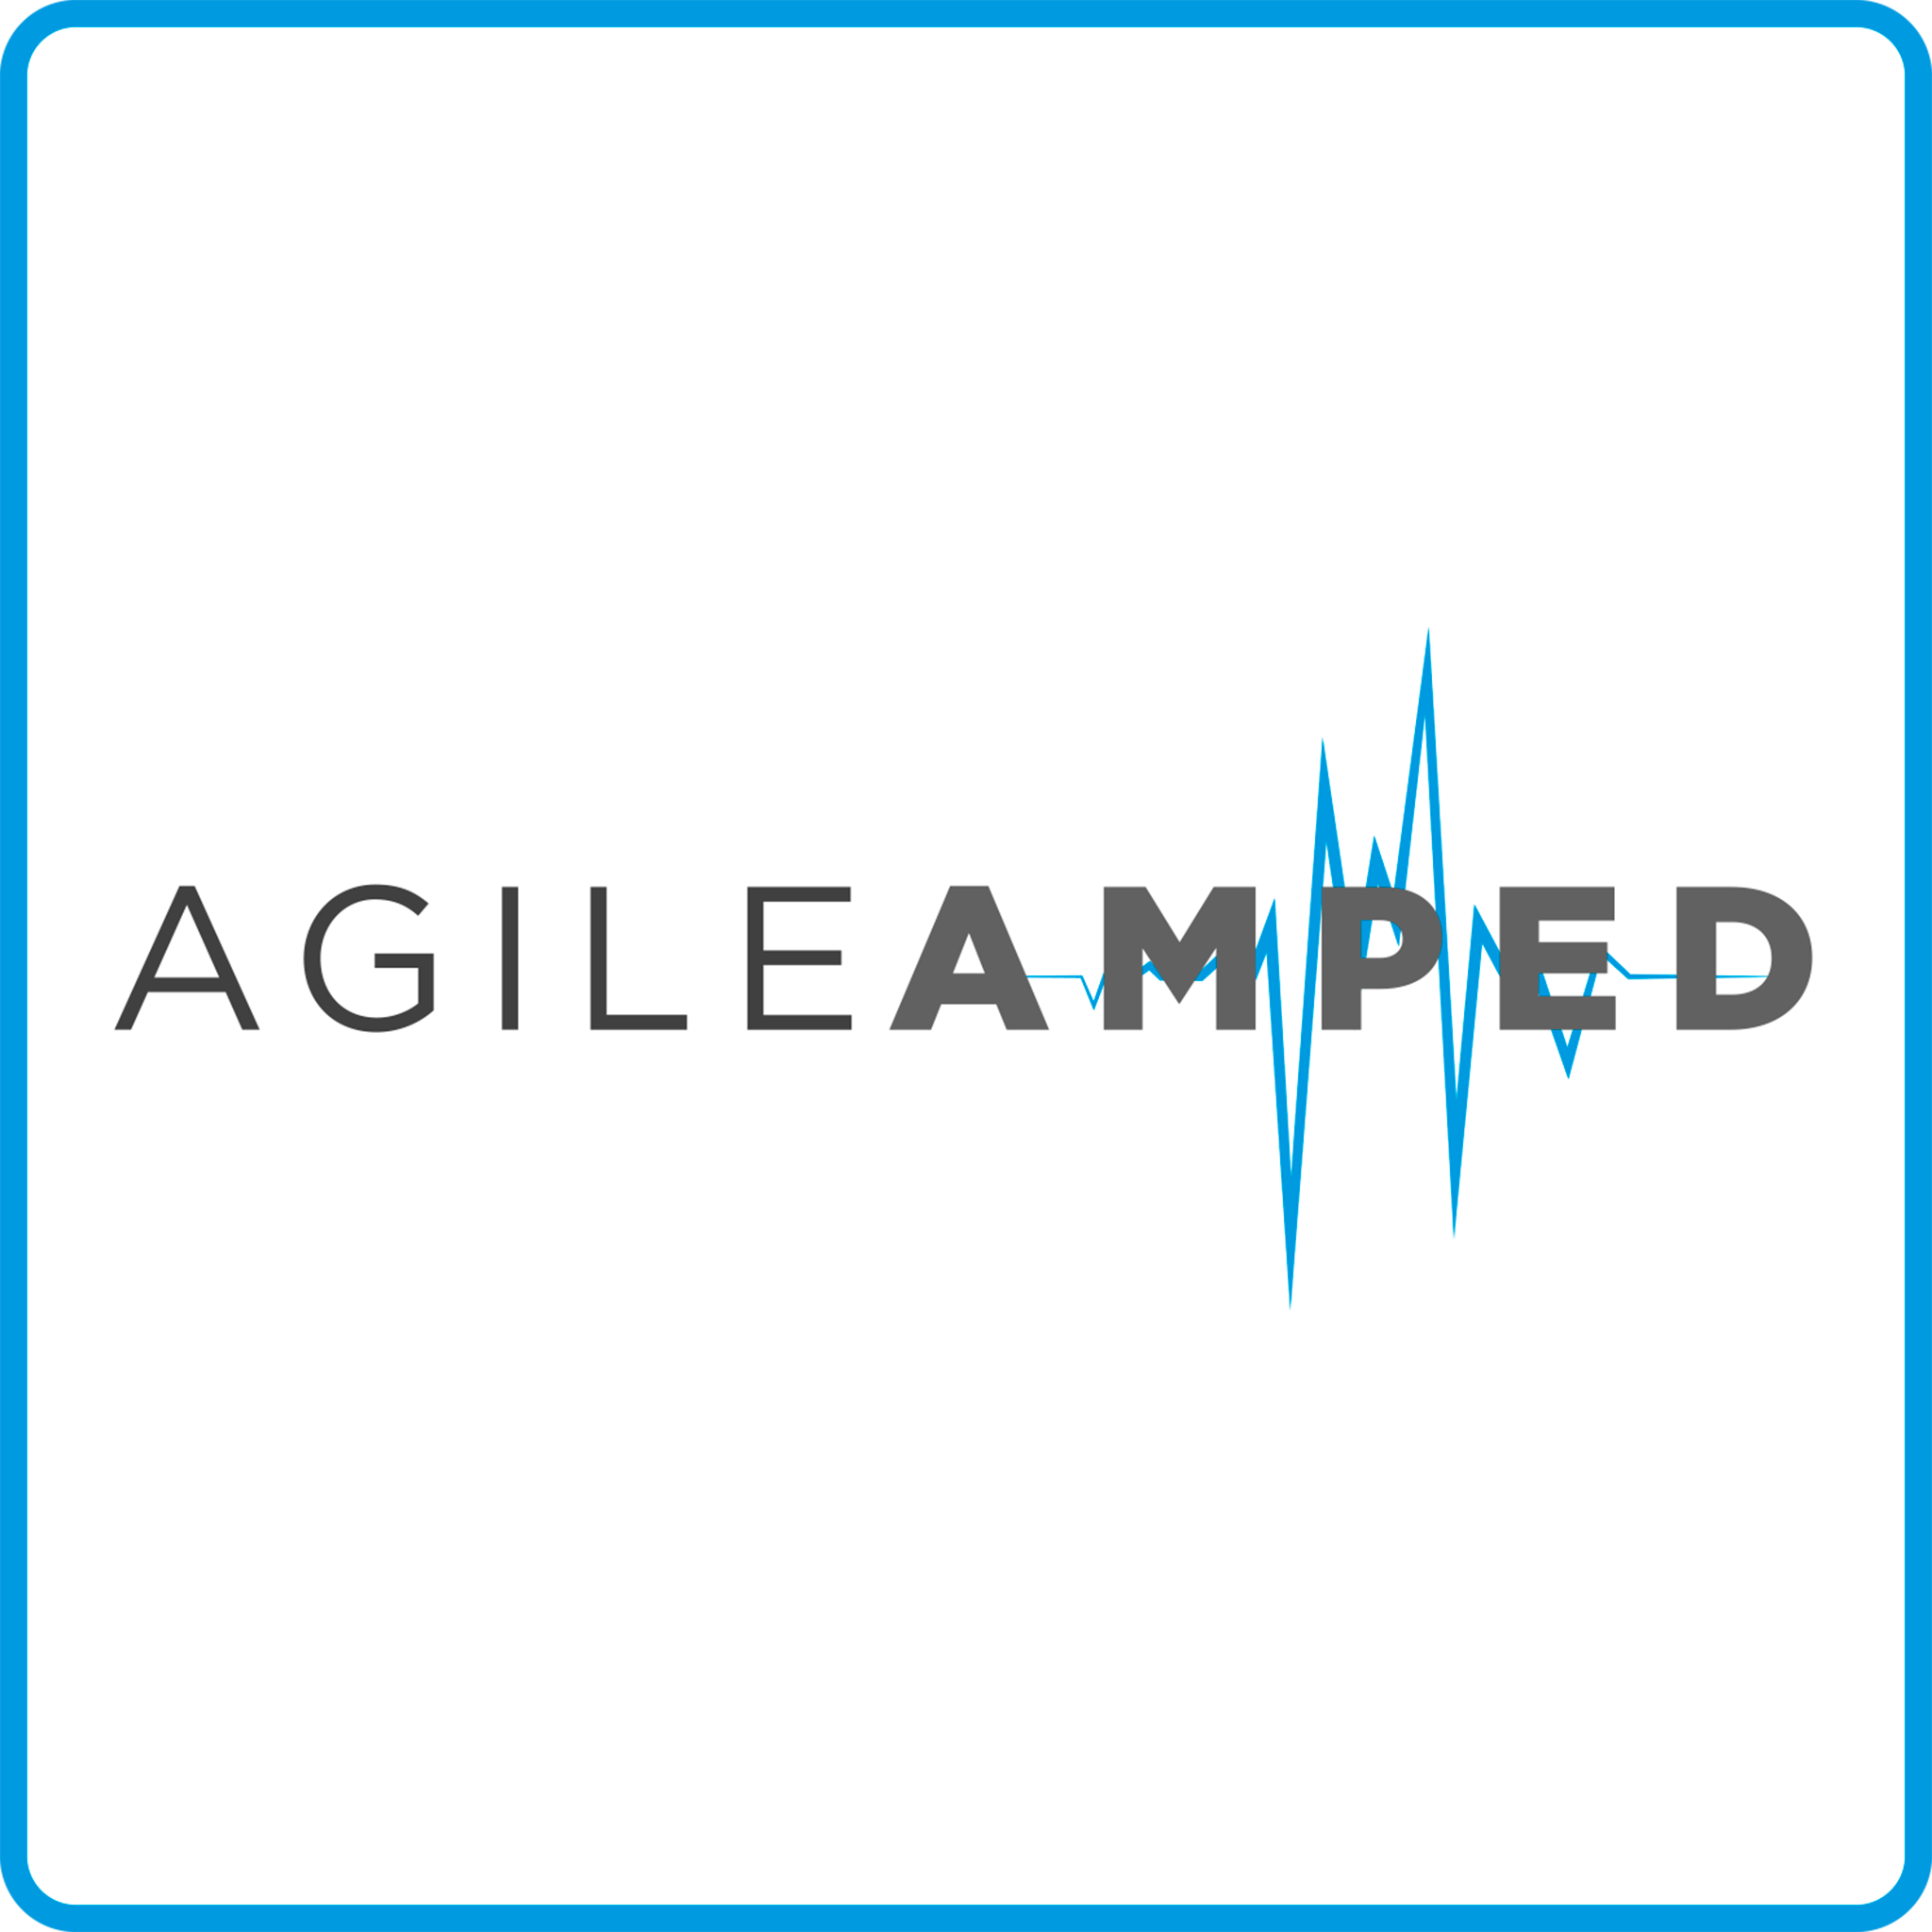 SolutionsIQ - Agile Amped Podcast